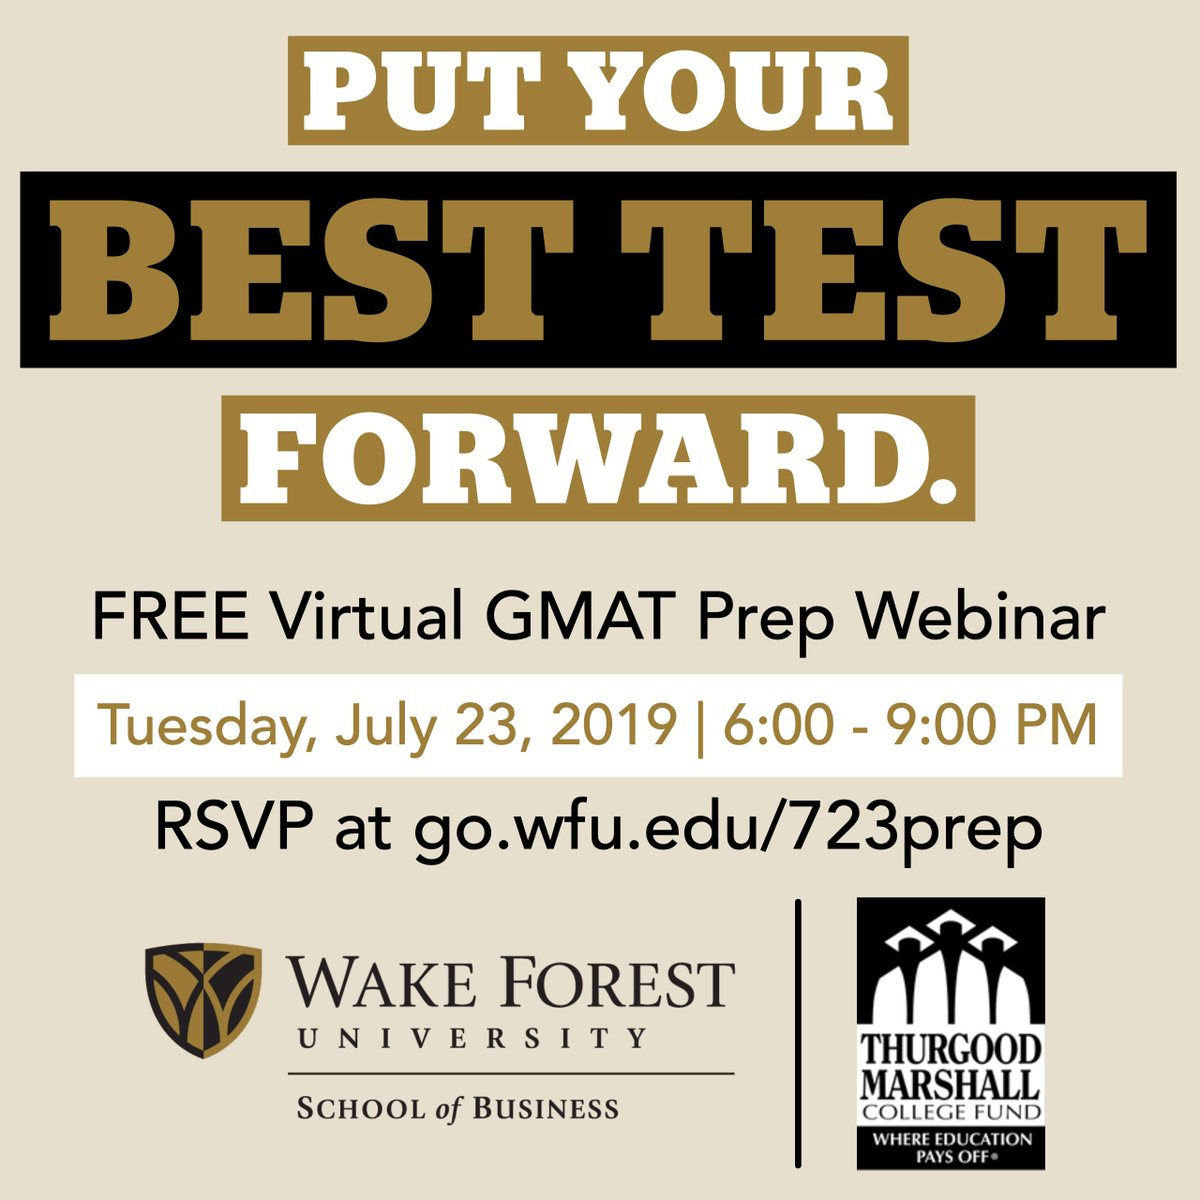 Interested in getting a graduate degree? Join @WakeForestBiz for their FREE GMAT prep webinar on Tuesday, July 23, 2019, from 6p - 9pm! Sign up now at https://t.co/qBIkRrBDAo  #GMAT #HBCUS #HBCUNEWS #gradschool